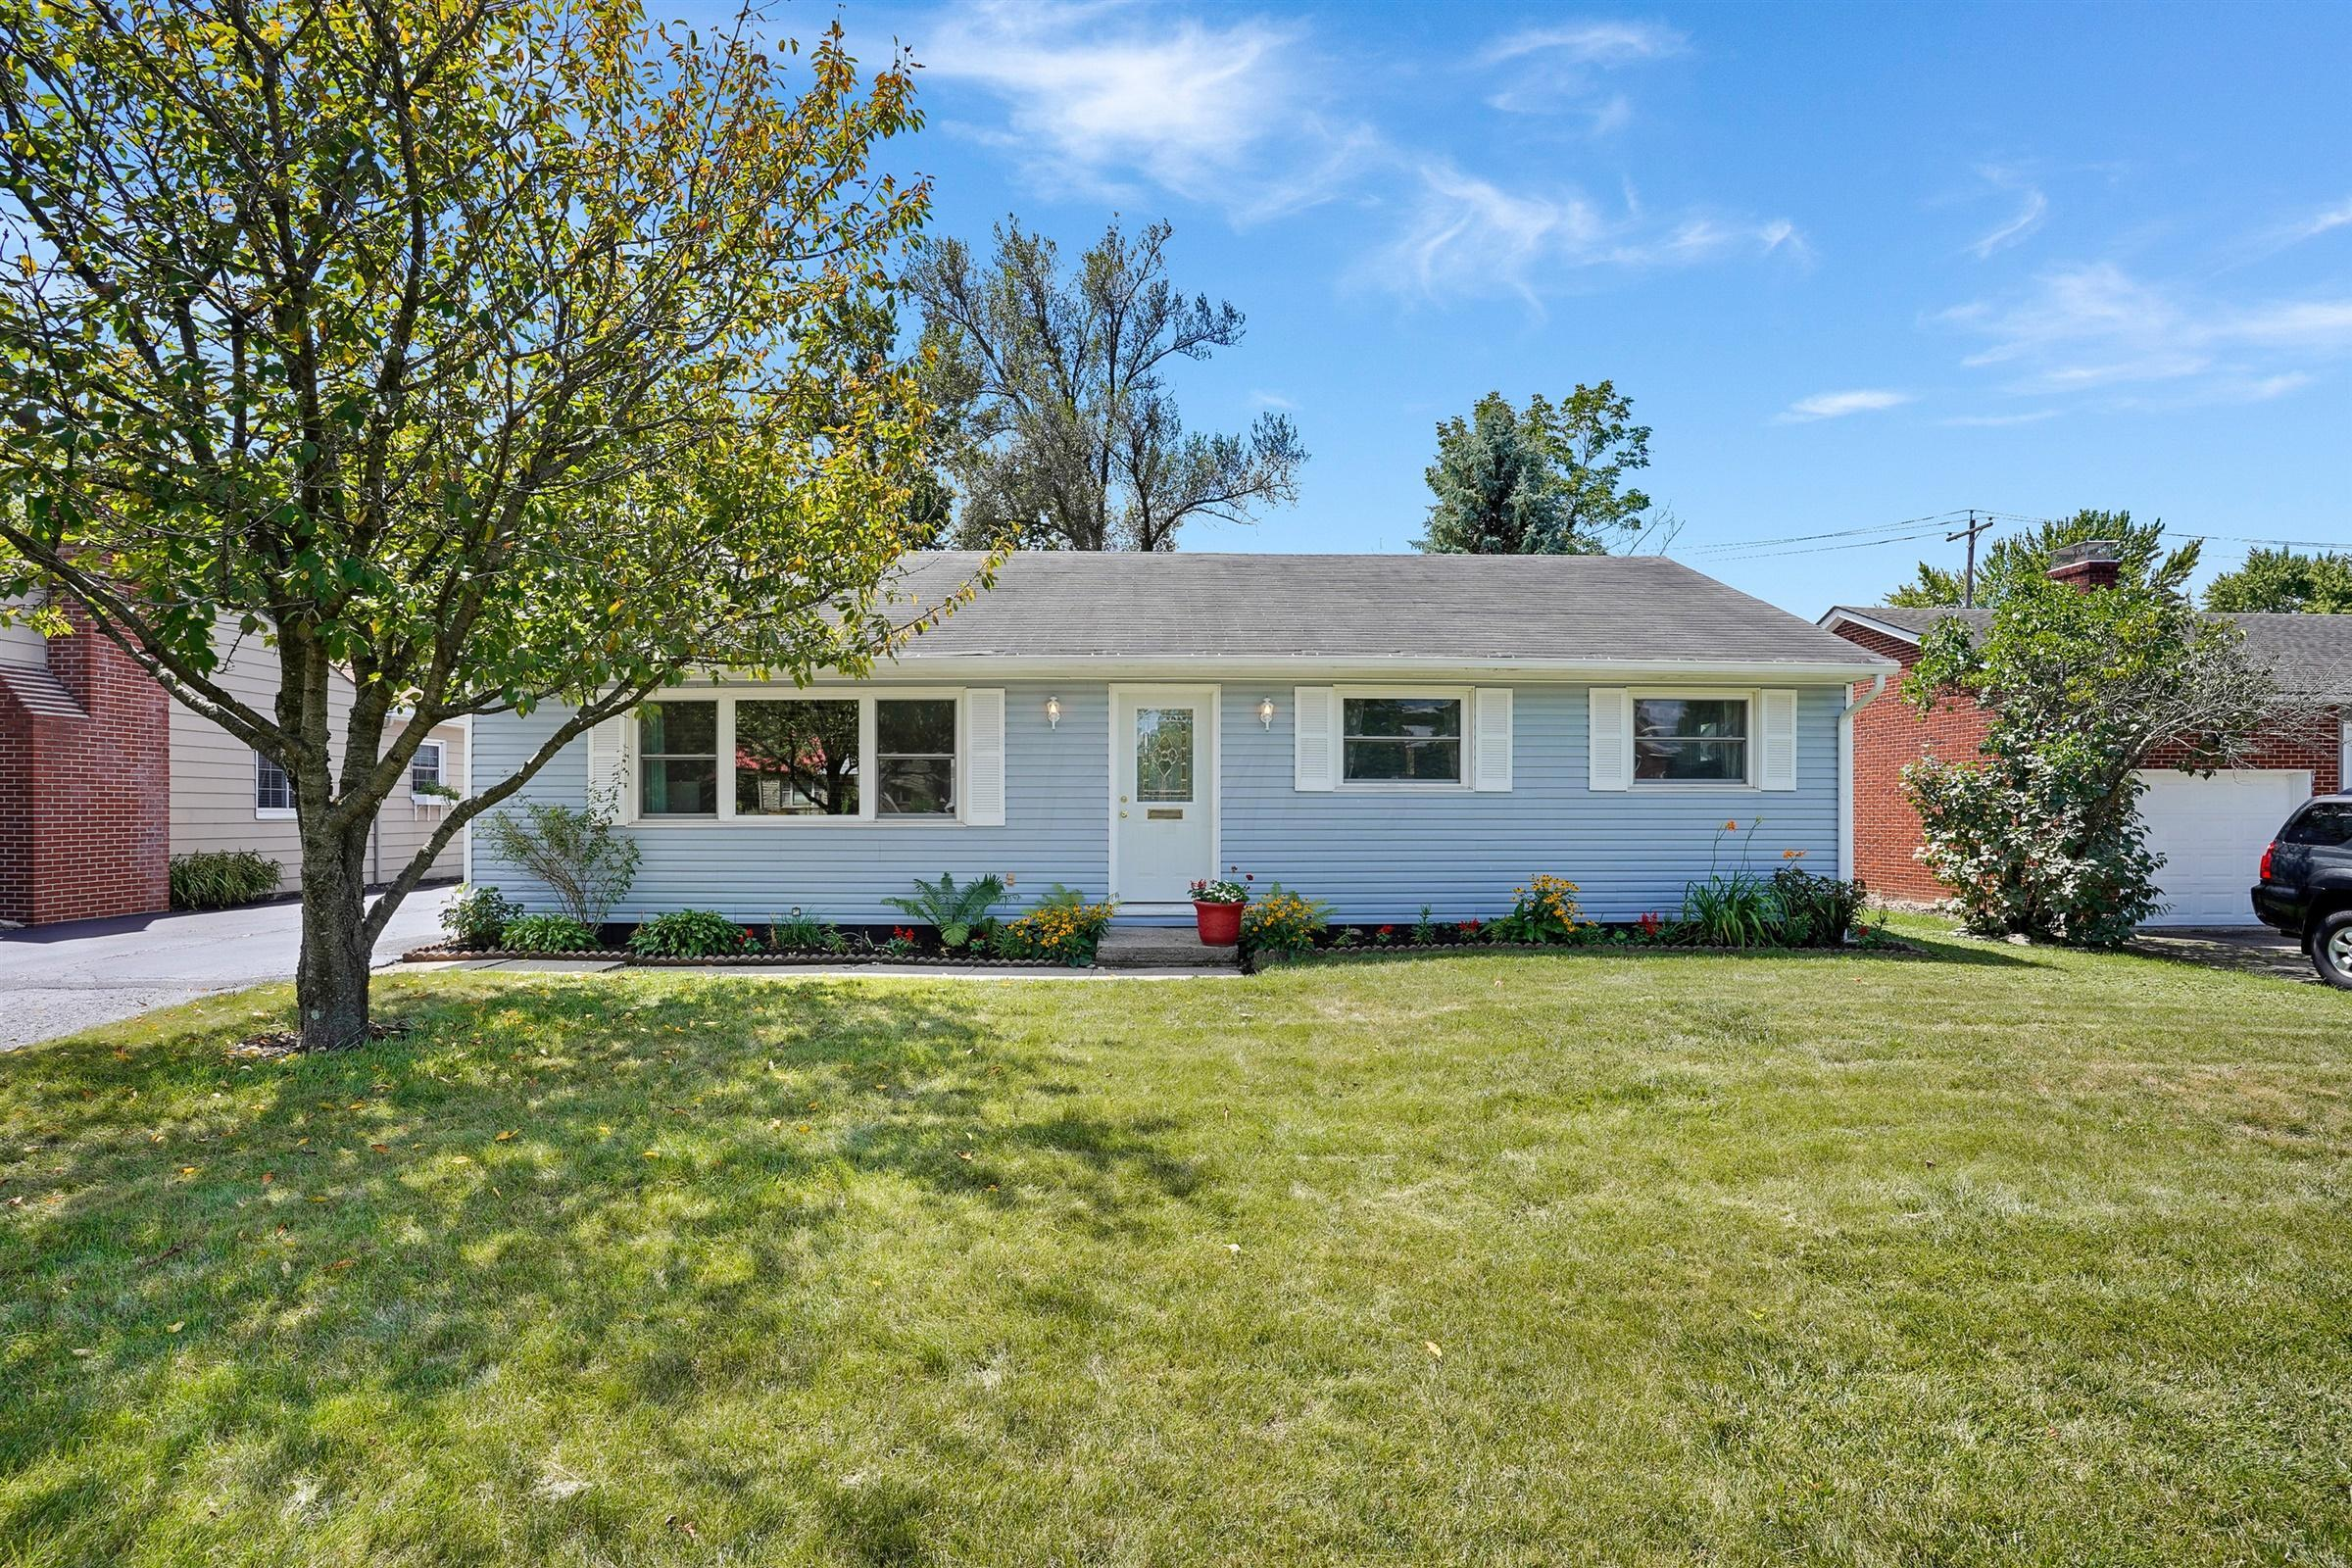 2201 Fishinger Road, Upper Arlington, Ohio 43221, 3 Bedrooms Bedrooms, ,2 BathroomsBathrooms,Residential,For Sale,Fishinger,220026459